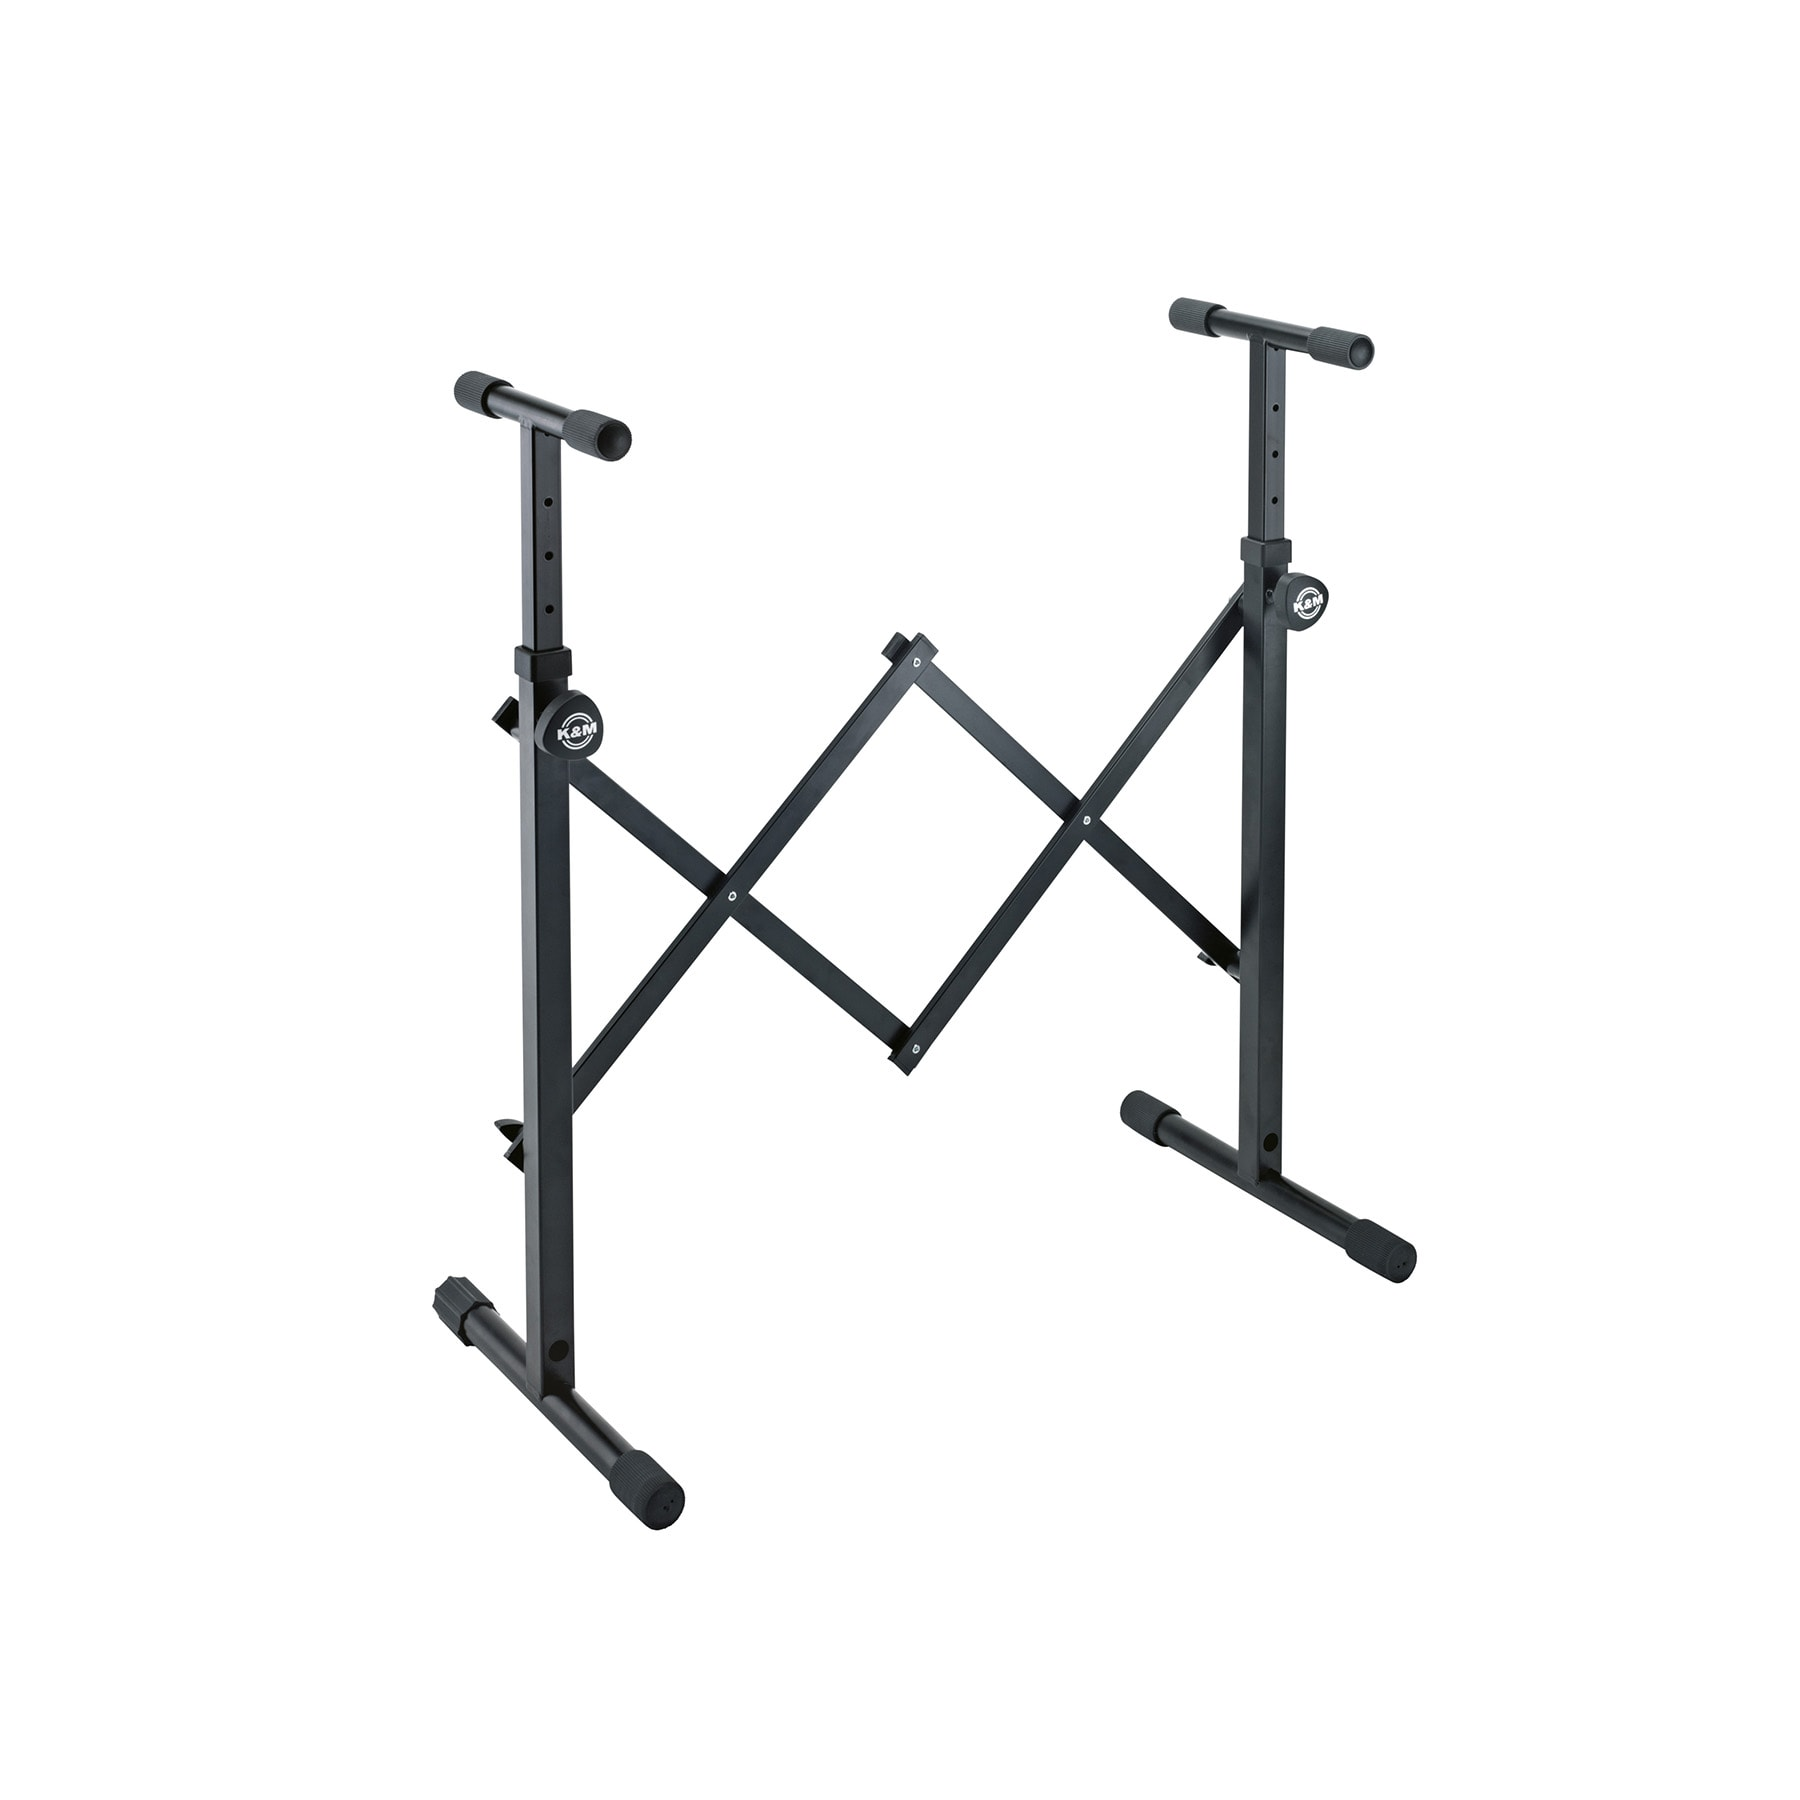 KM18826 - Equipment stand